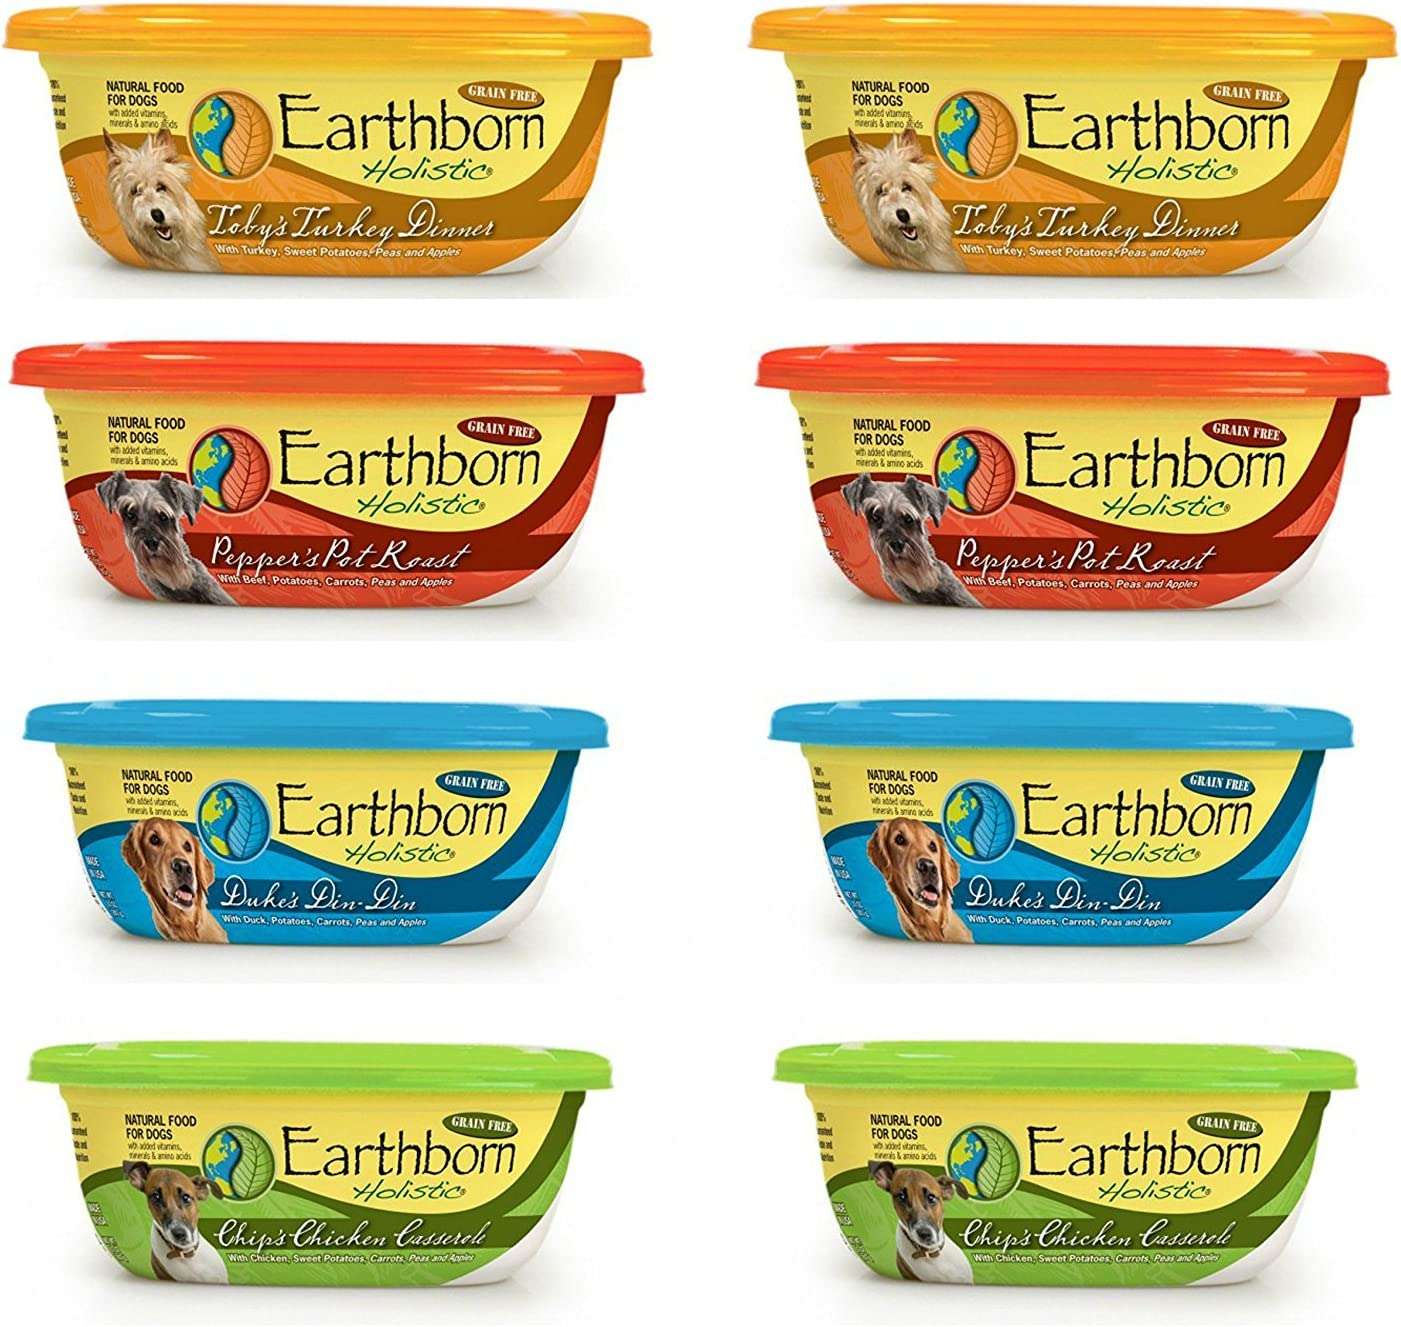 Earthborn Holistic Grain Free Tub Dog Food 4 Flavor Variety Bundle: (2) Pot Roast, (2) Chicken Casserole Stew, (2) Turkey Dinner in Gravy and (2) Stew with Duck, 8 Ounces Each (8 Tubs Total)